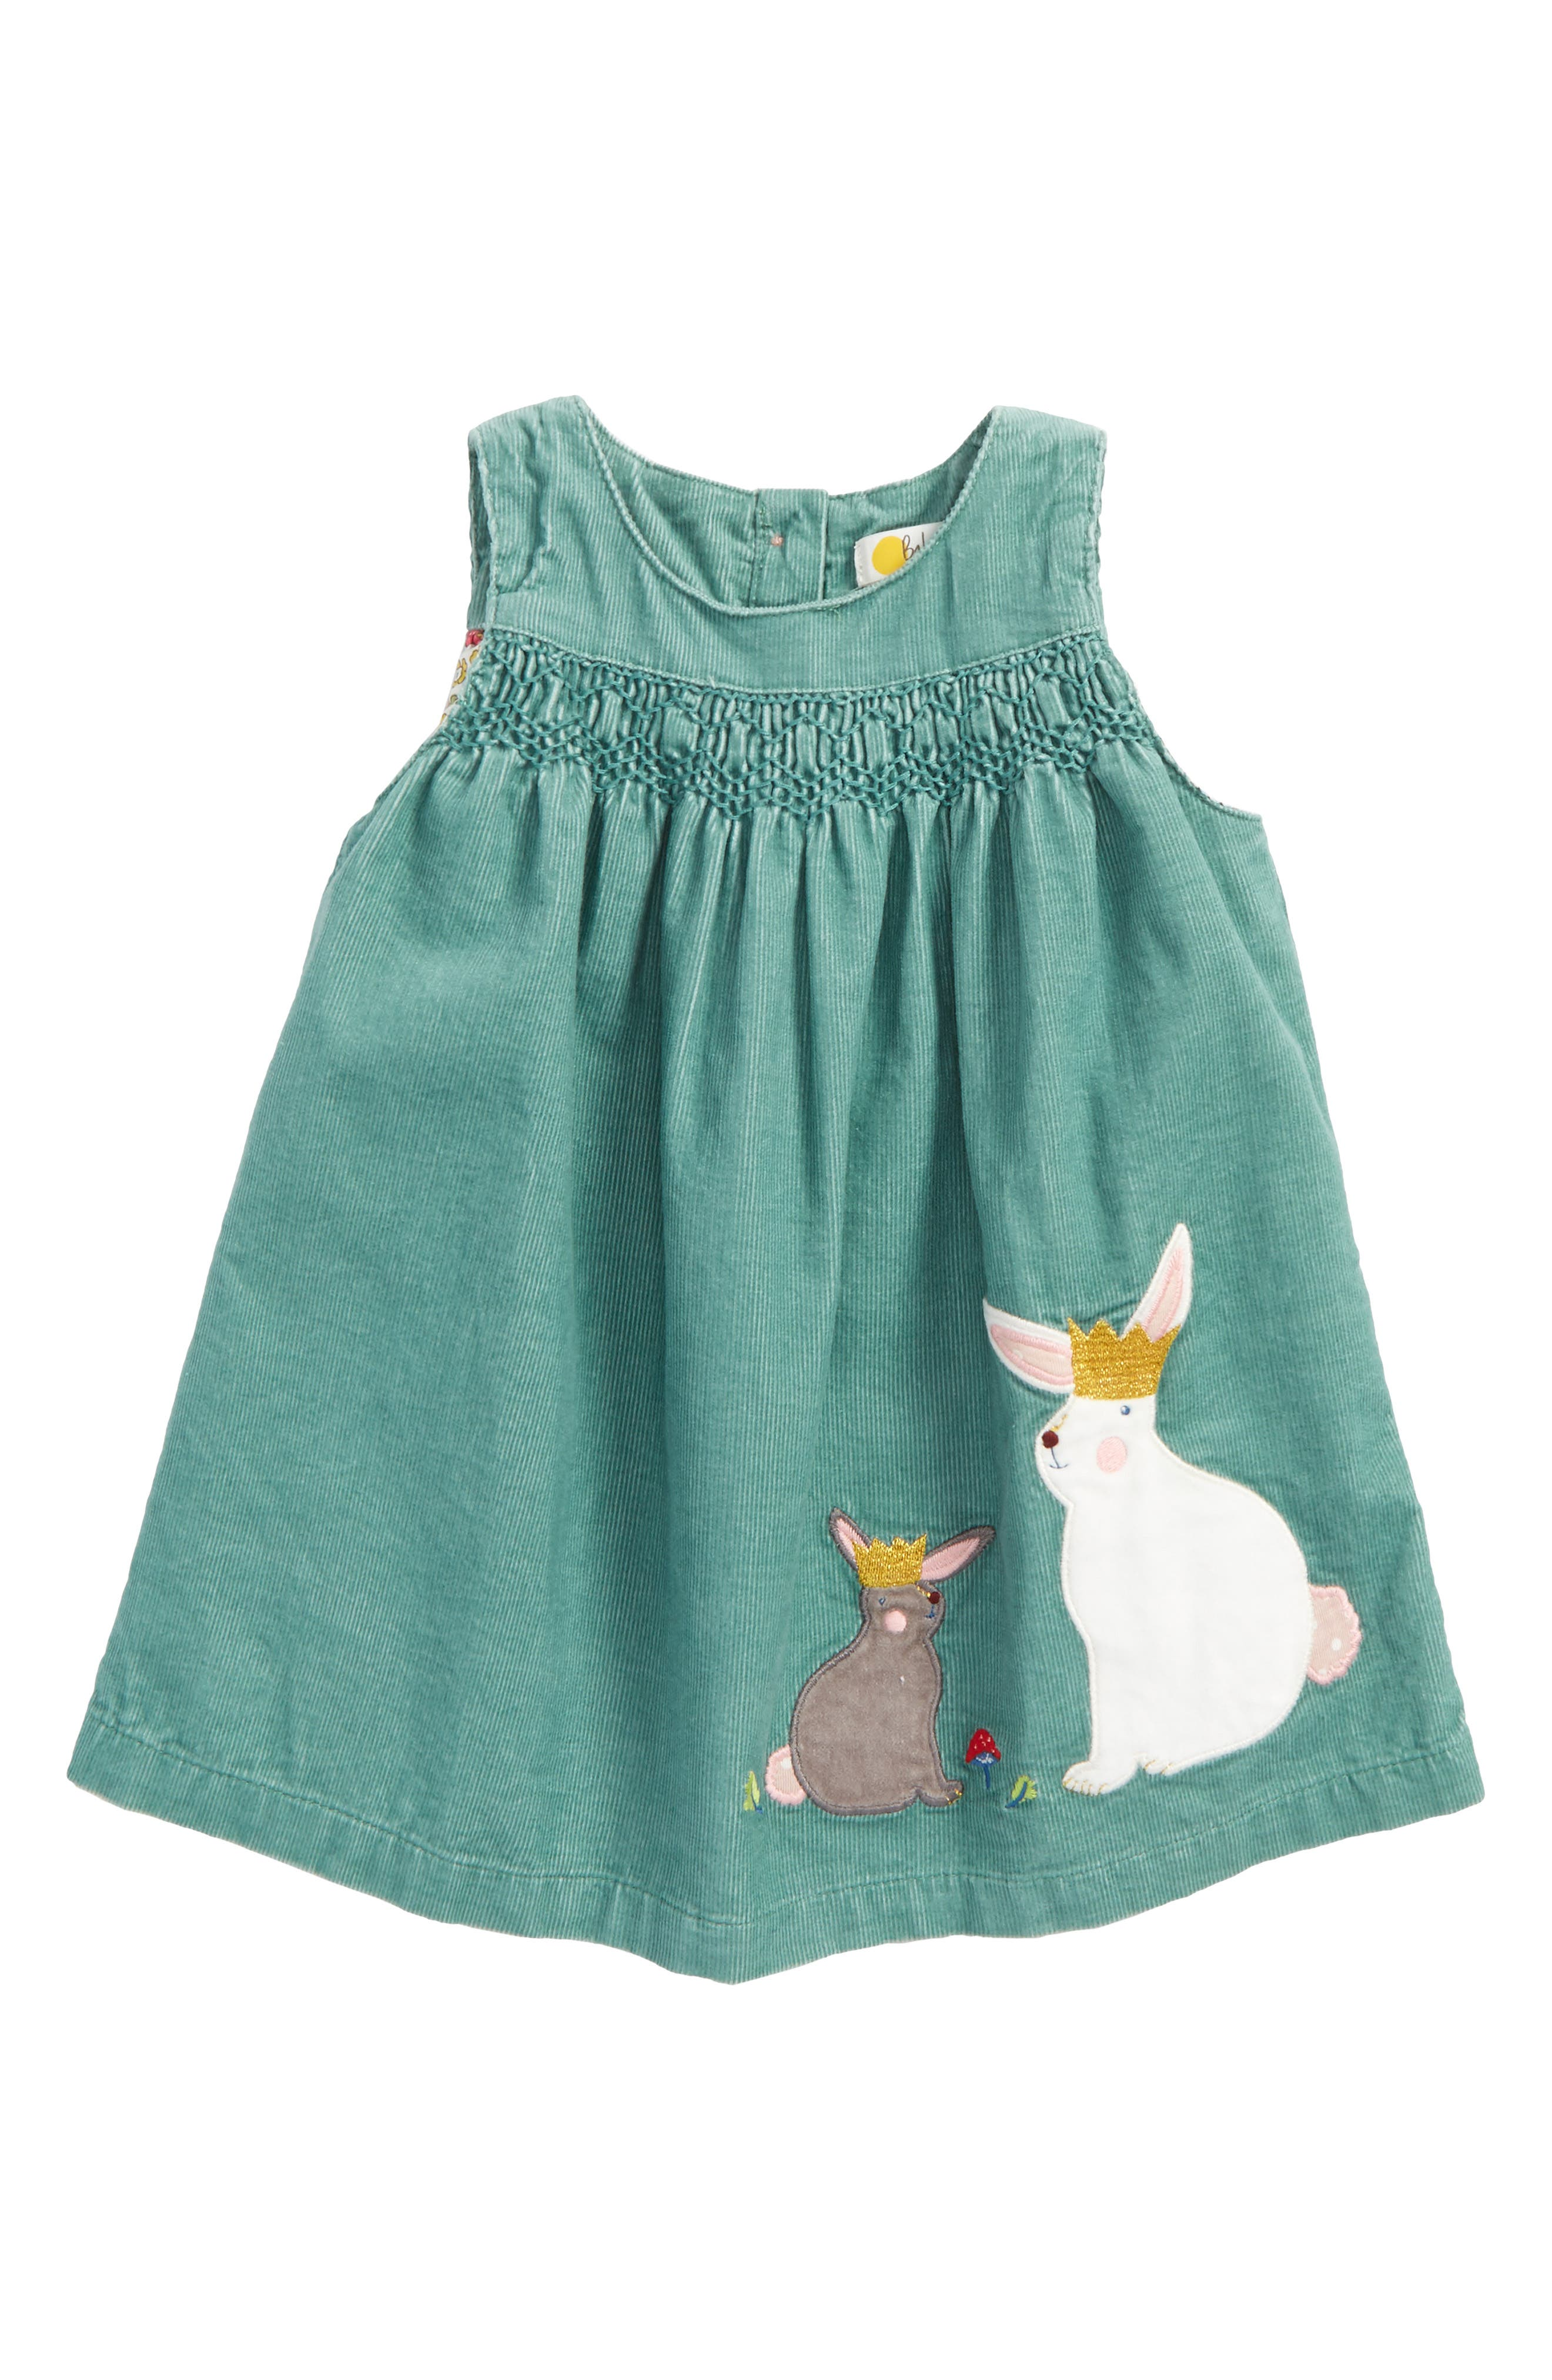 Alternate Image 1 Selected - Mini Boden Fairy Tale Appliqué Corduroy Pinafore (Baby Girls)